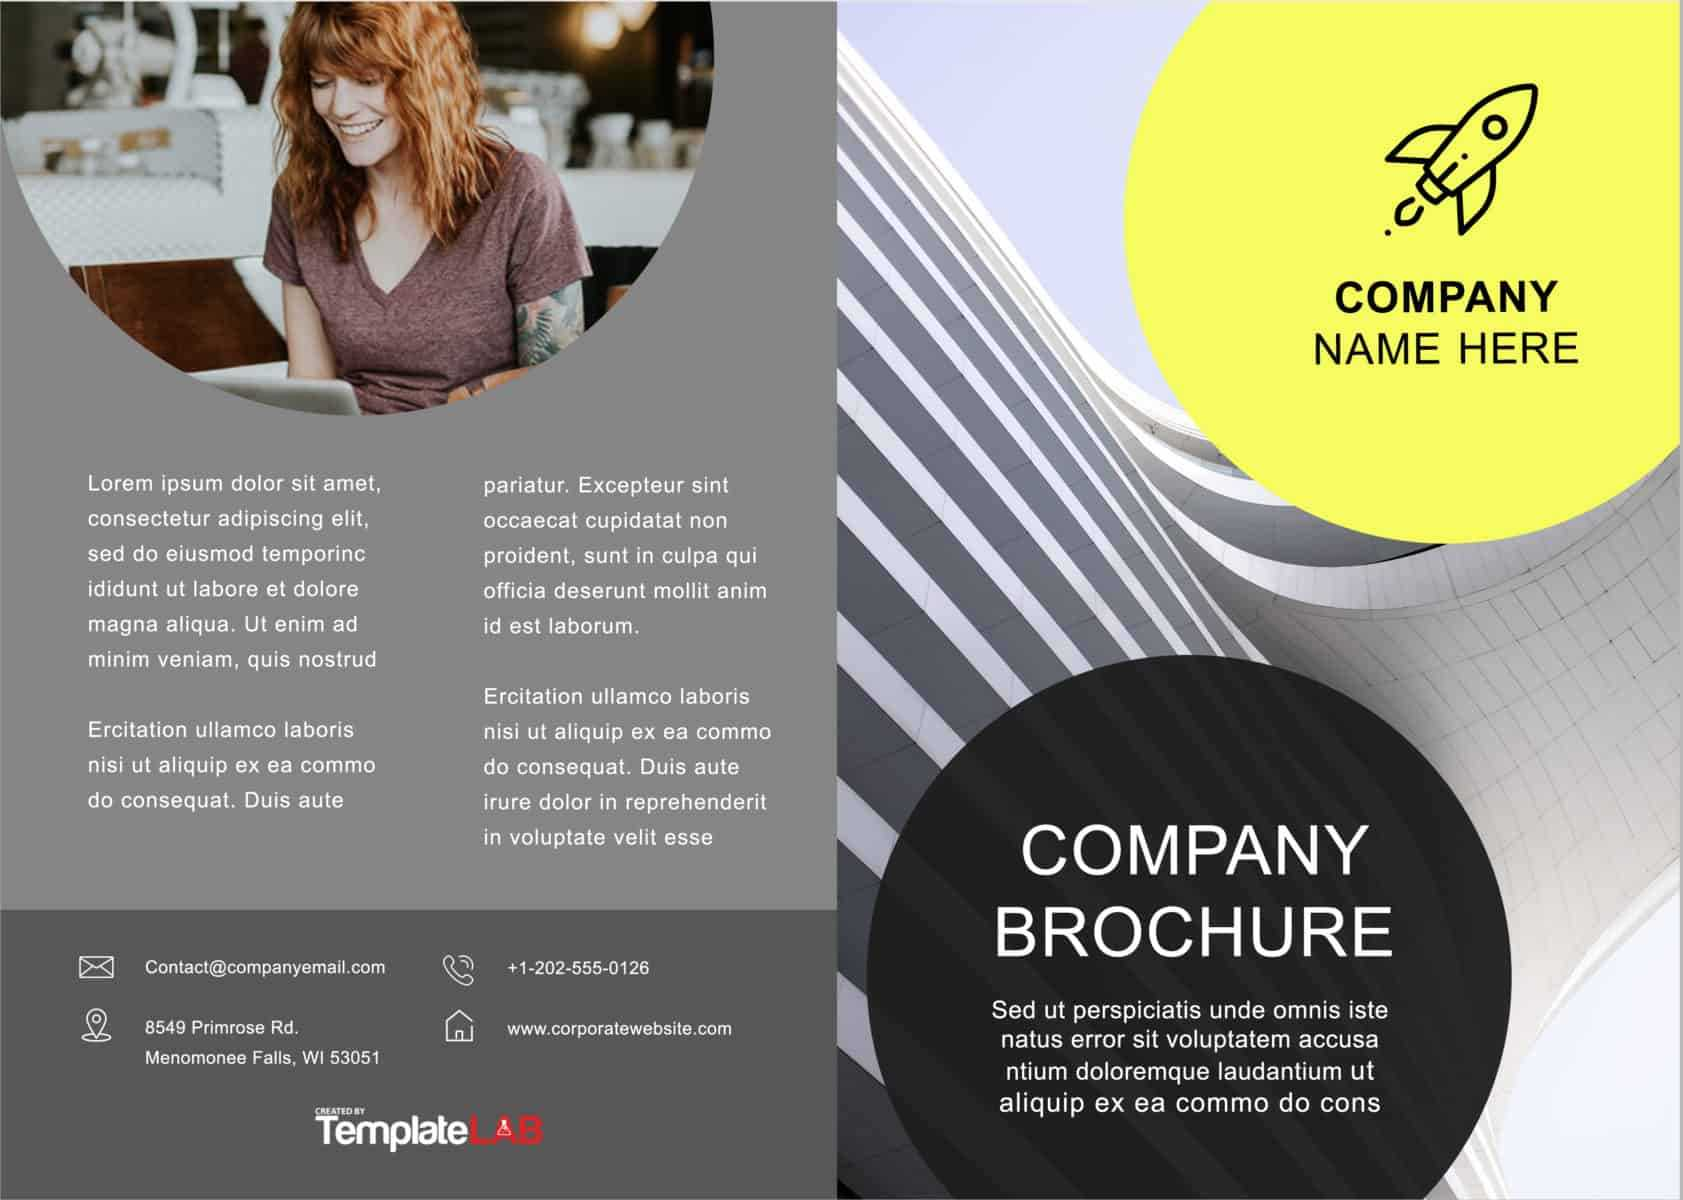 33 Free Brochure Templates (Word + Pdf) ᐅ Template Lab With Regard To Online Brochure Template Free